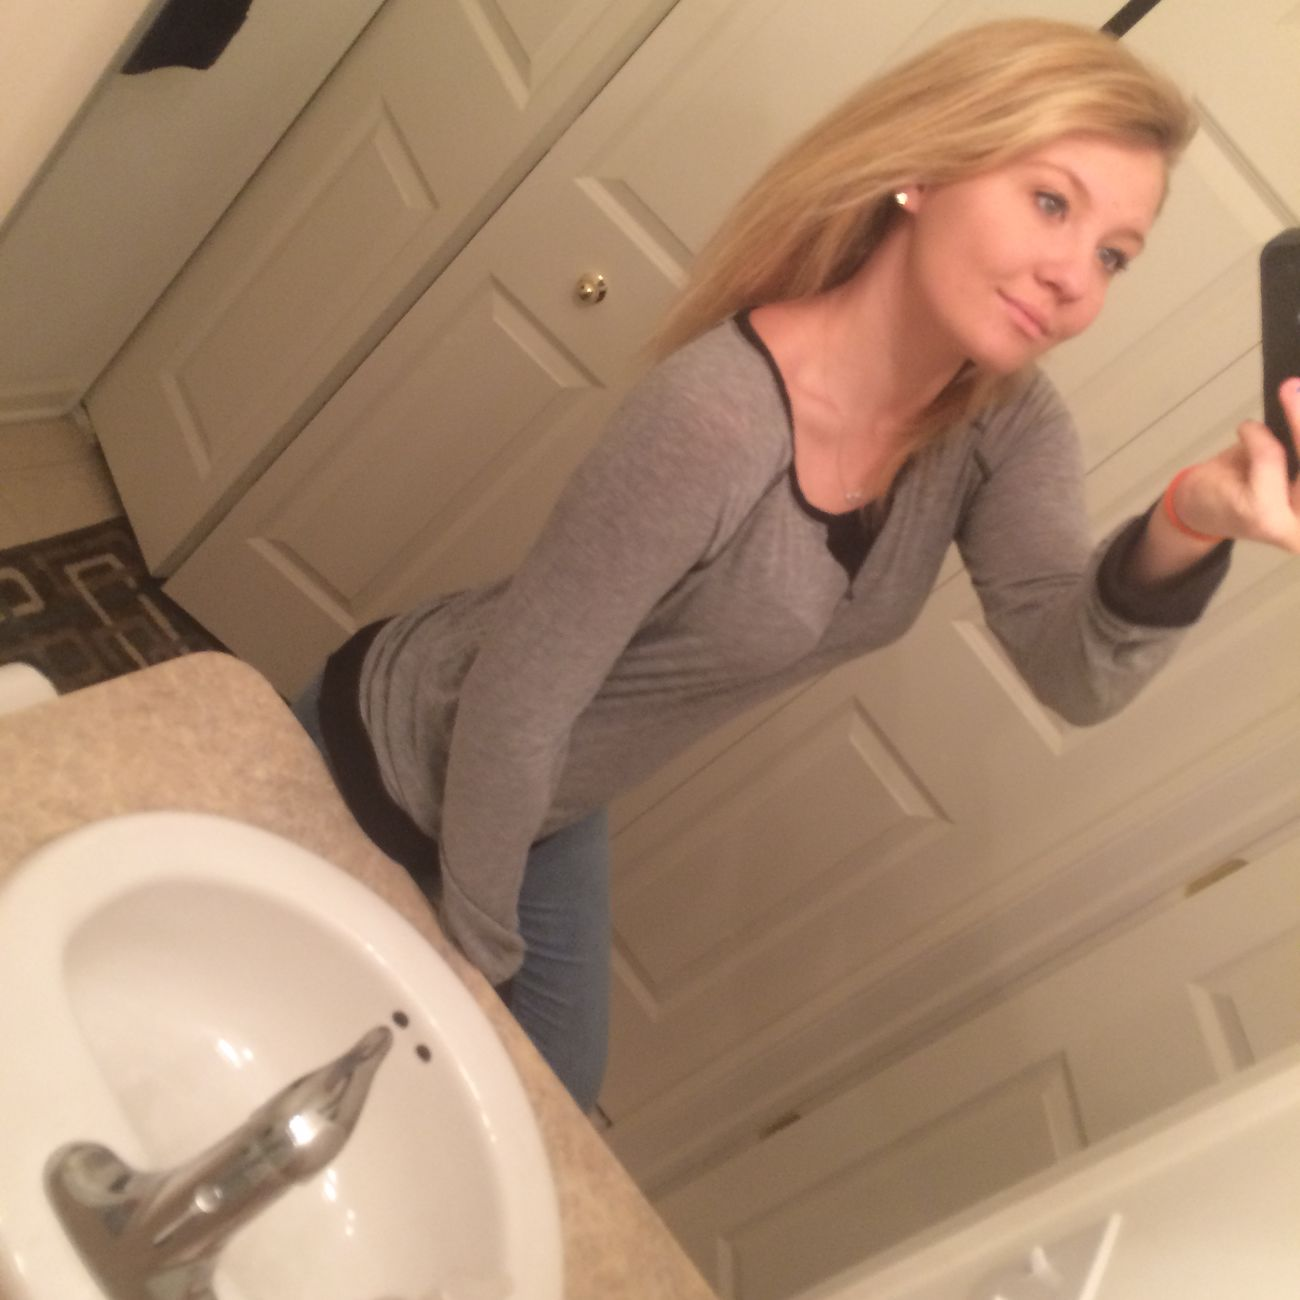 Blonde Longerhair Needlongerhair Naturalhair Bathroom Selfie Dontjudgeme Babe